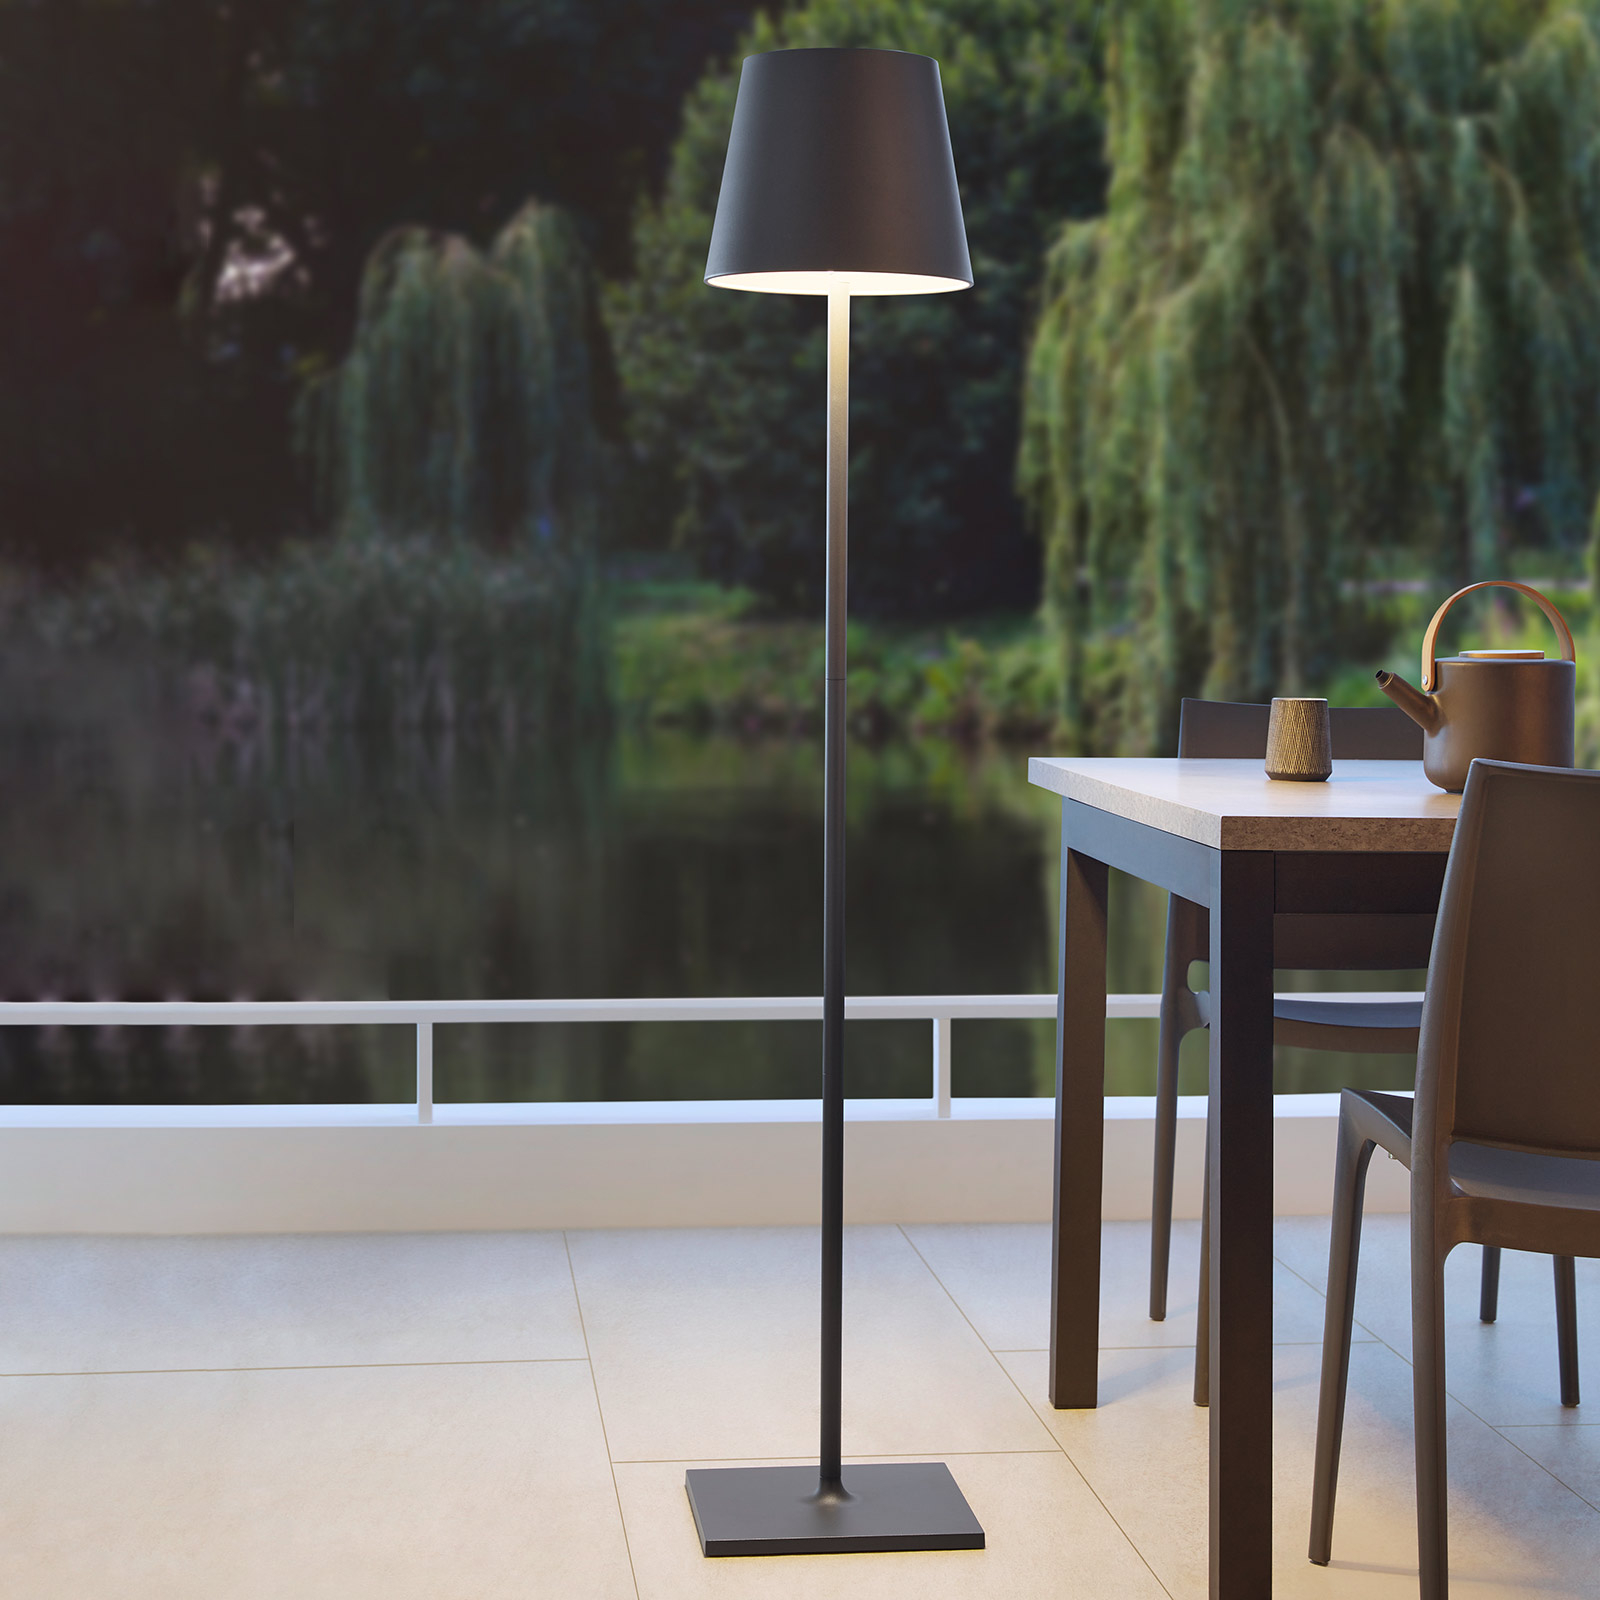 Led Stehleuchte Quint Outdoor Kabellos Lampenwelt At